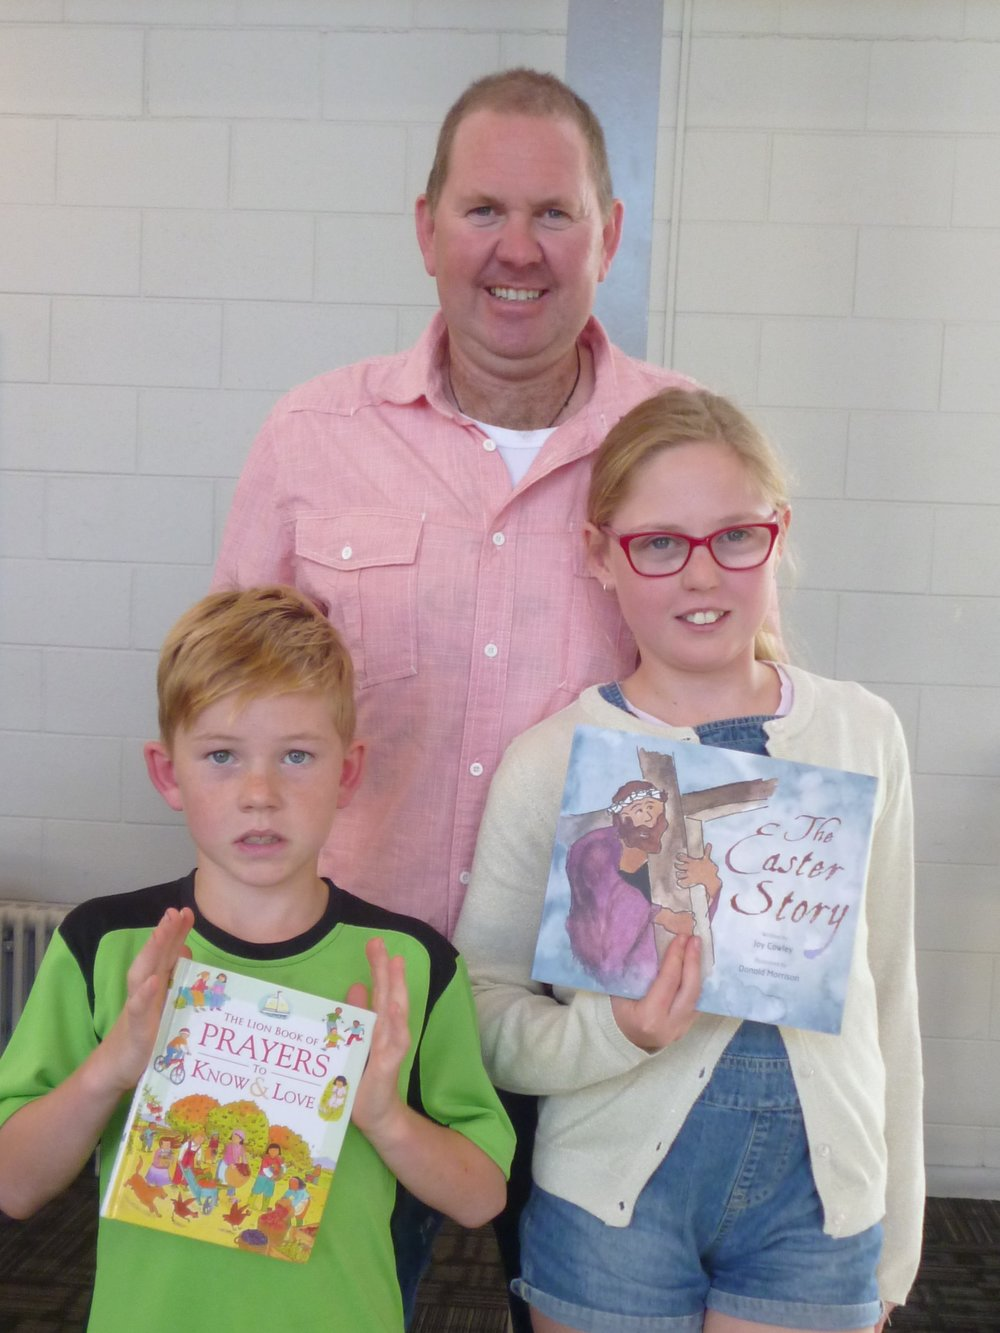 Tim Barker, of Tokanui, with his children Kayden and Kayla show appreciation for books received from Catholic primary schools in our diocese.